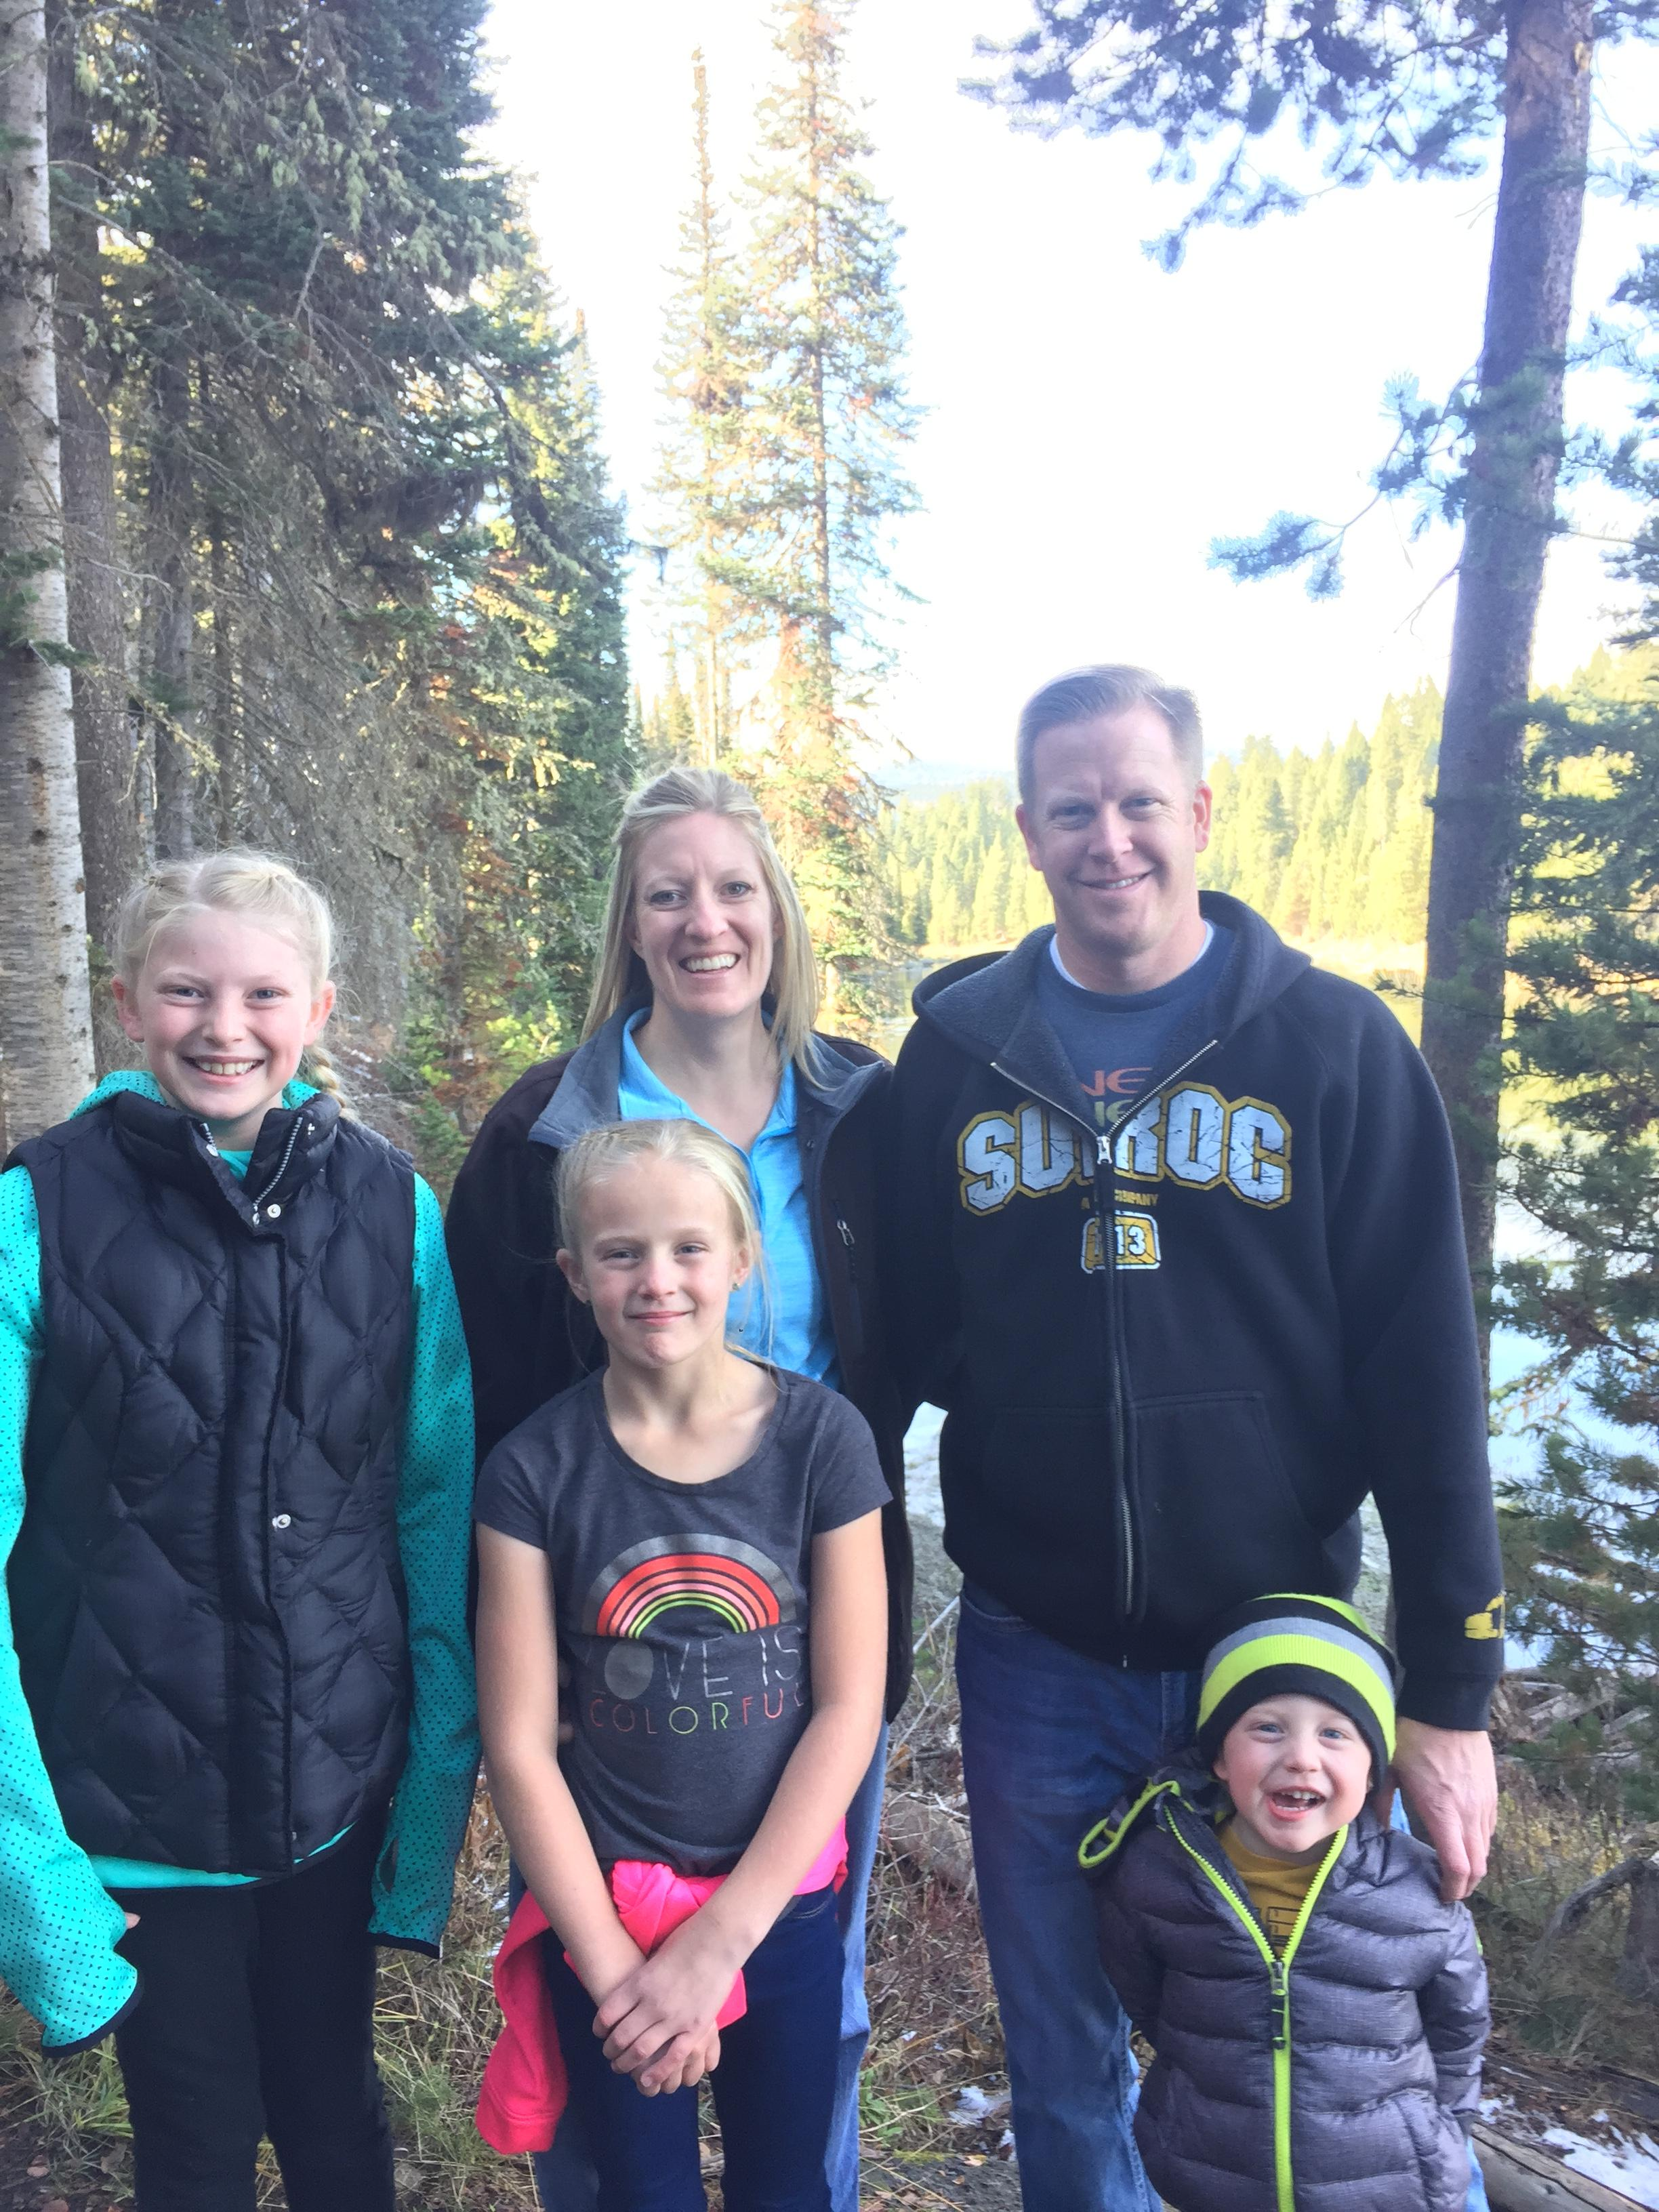 Chloee &amp;amp; Family in Yellowstone. (Photo: Grunander Family)<p></p>